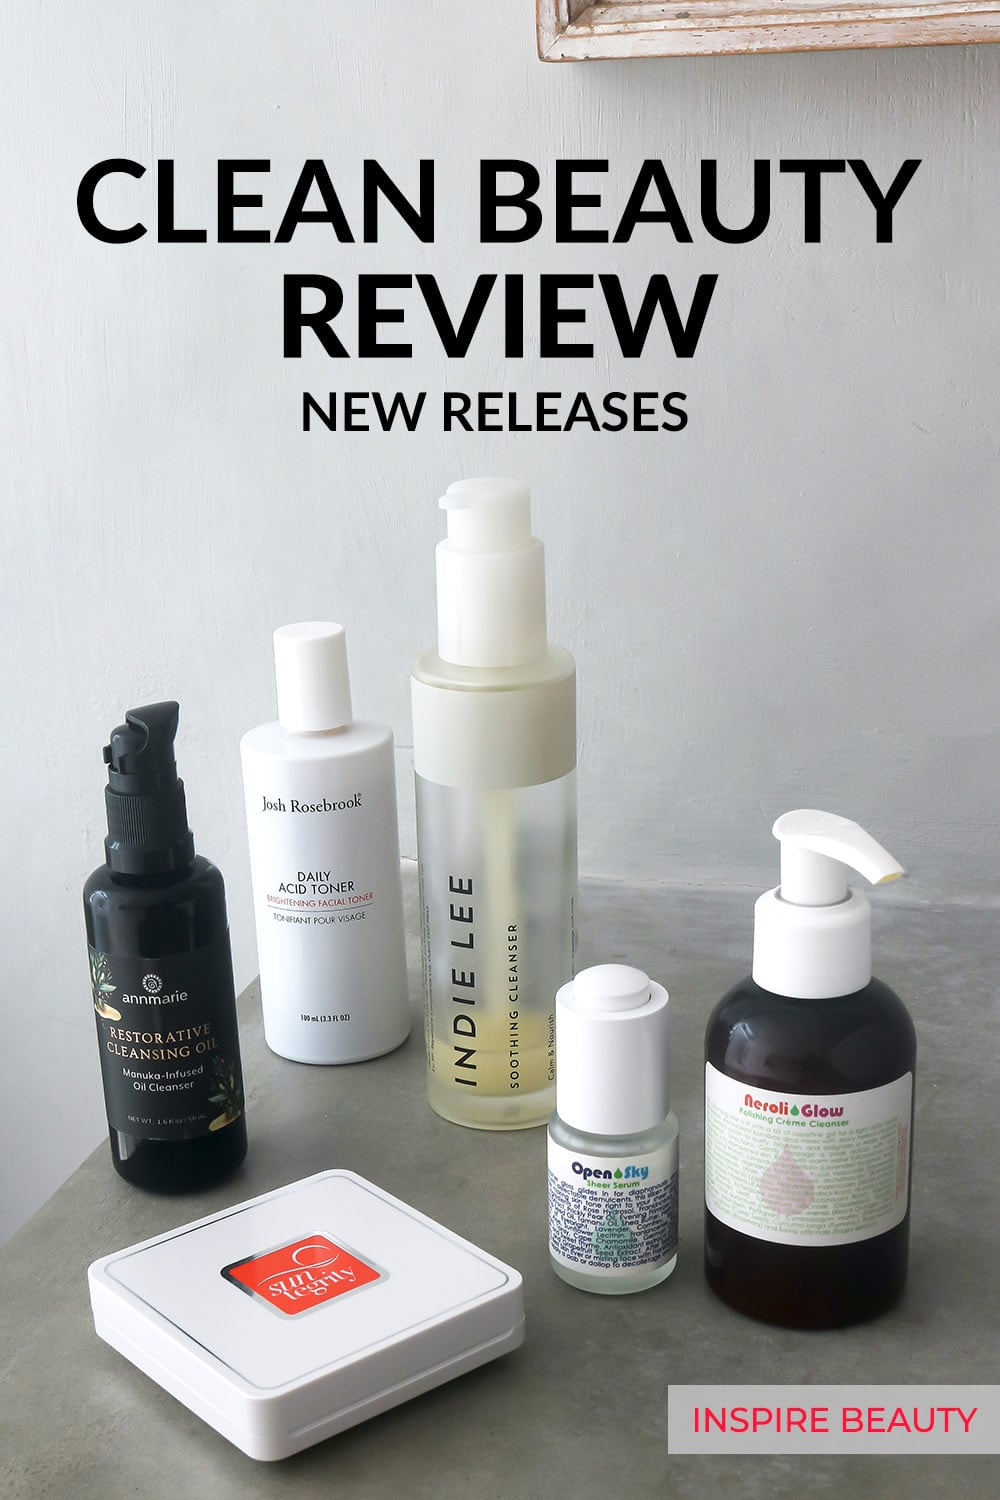 Review of new products from Living Libations, Sunetgrity, Josh Rosebrook, Indie Lee, Annmarie Skin Care